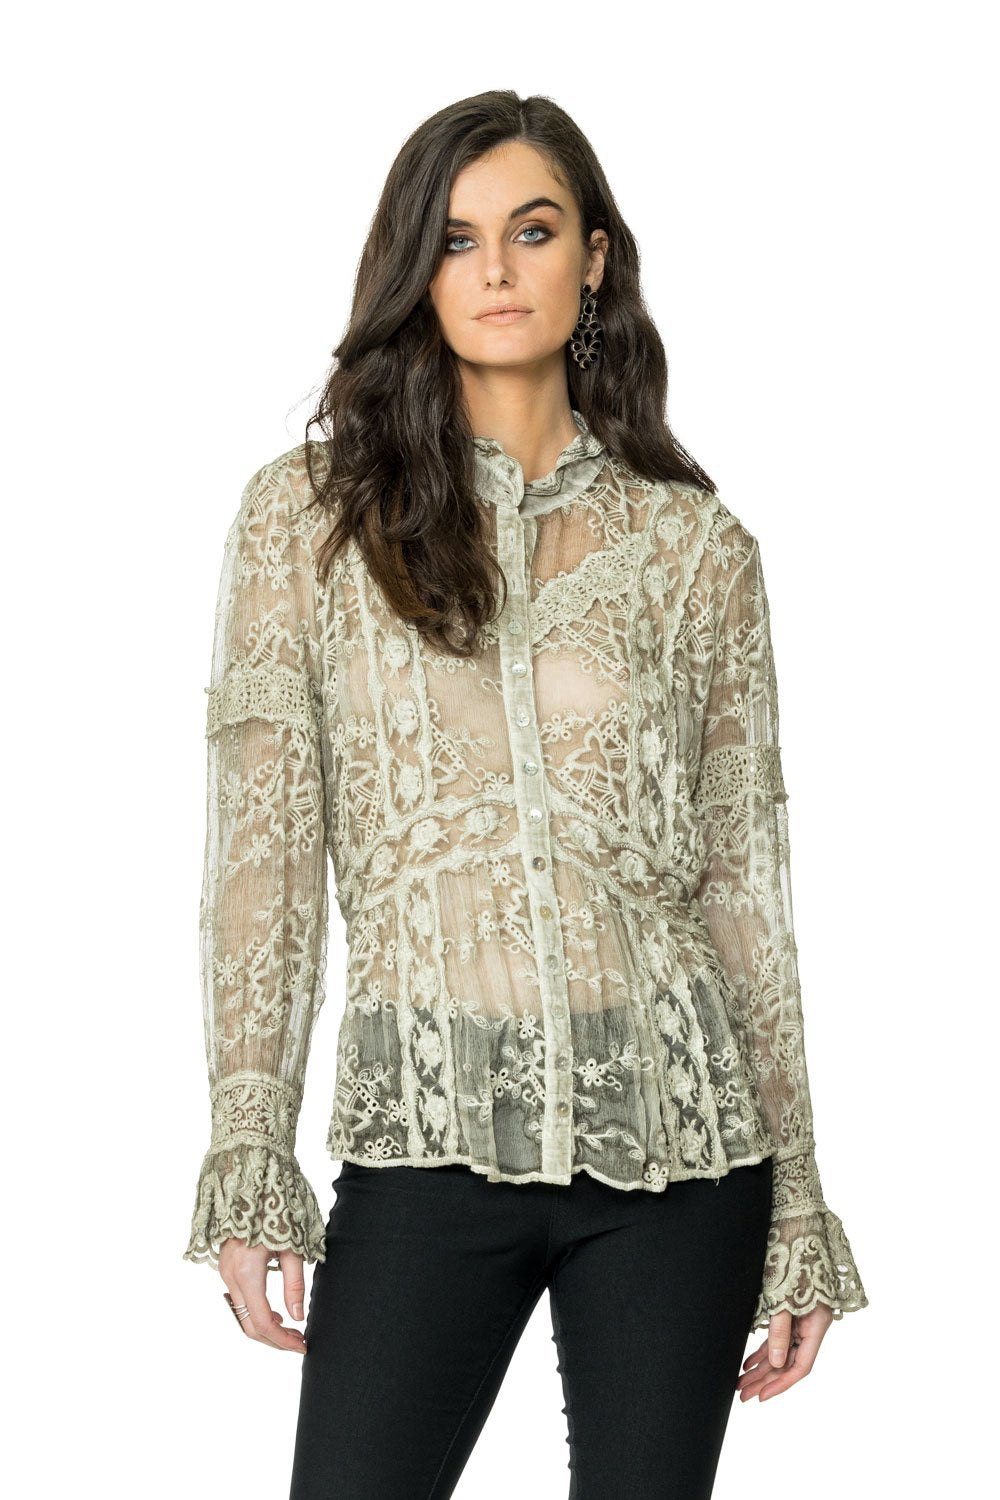 DDR Long Sleeve Lace Luciana Top in String at 6Whiskey six whisky Maria Spring 2021 T3420